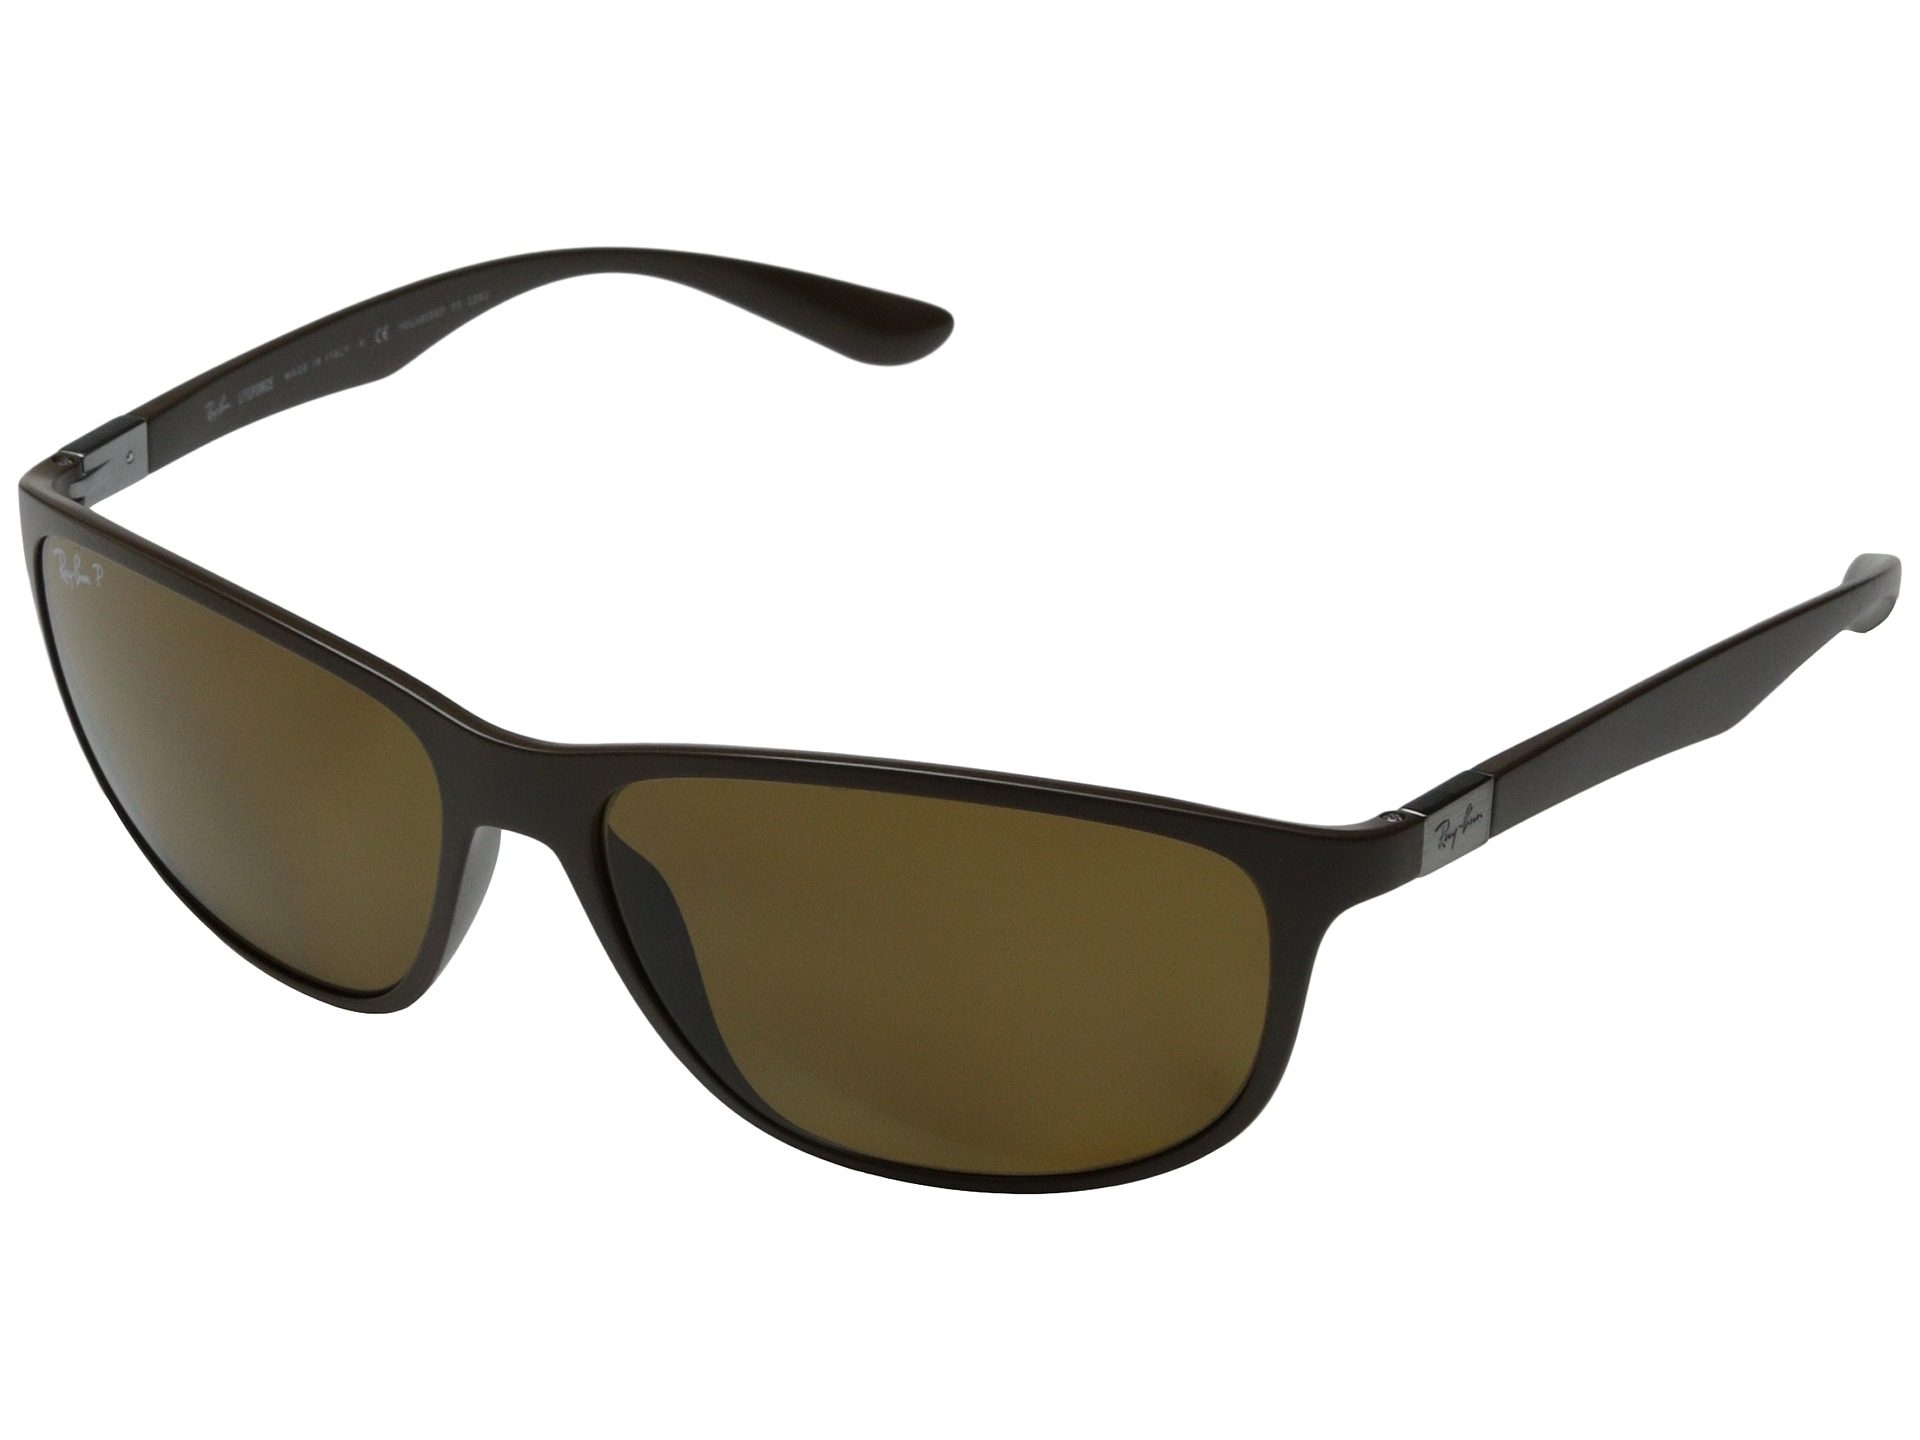 Ray Ban Rx Frames Made In China www.tapdance.org